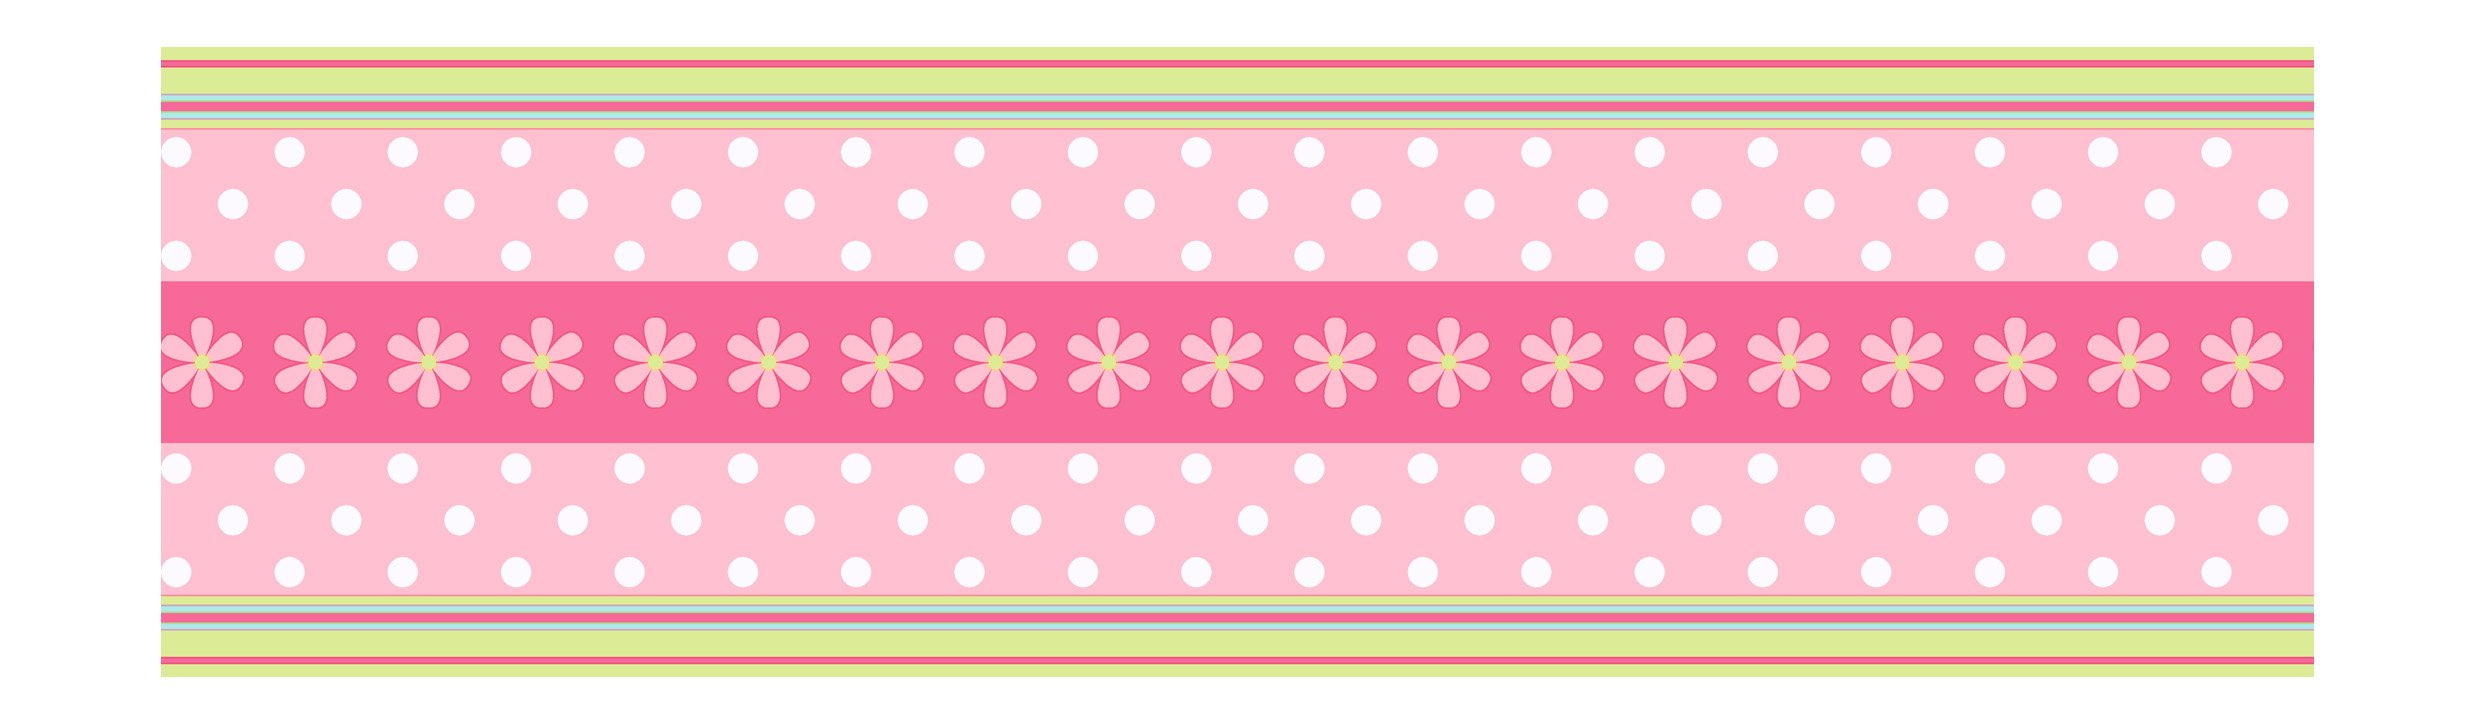 York Wallcoverings Candice Olson Kids CK7720B Daisy Ribbon Border, Pink/Green